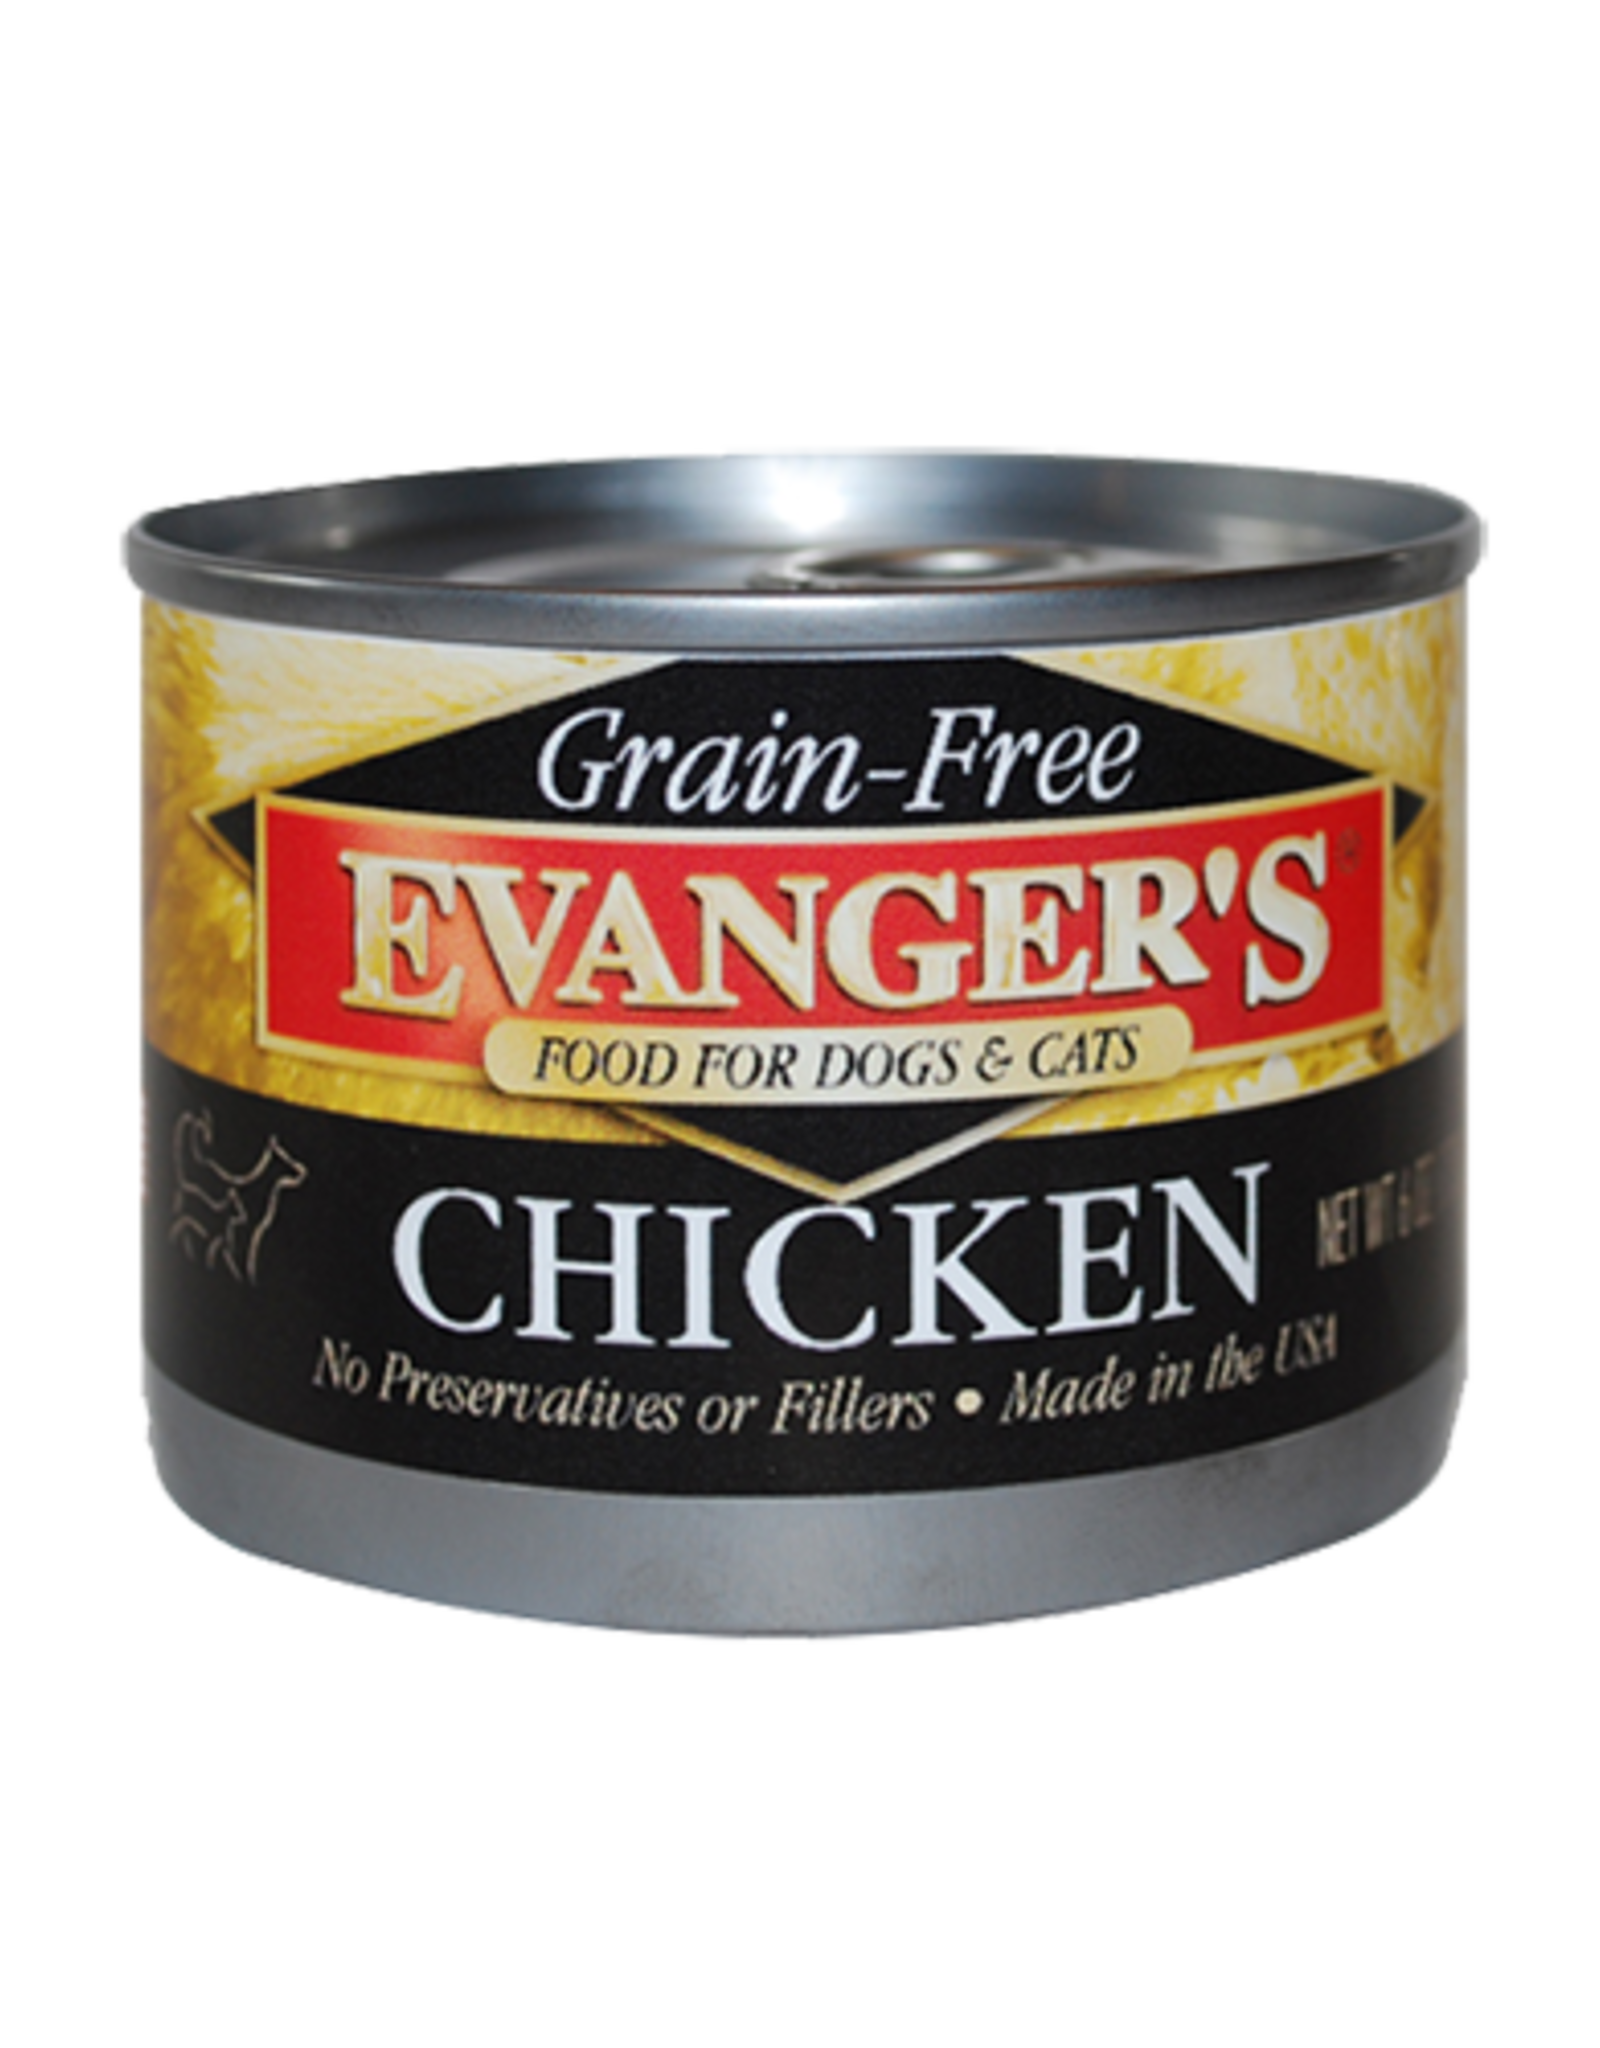 EVANGER'S EVANGERS GRAIN FREE COOKED CHICKEN 13OZ CAN